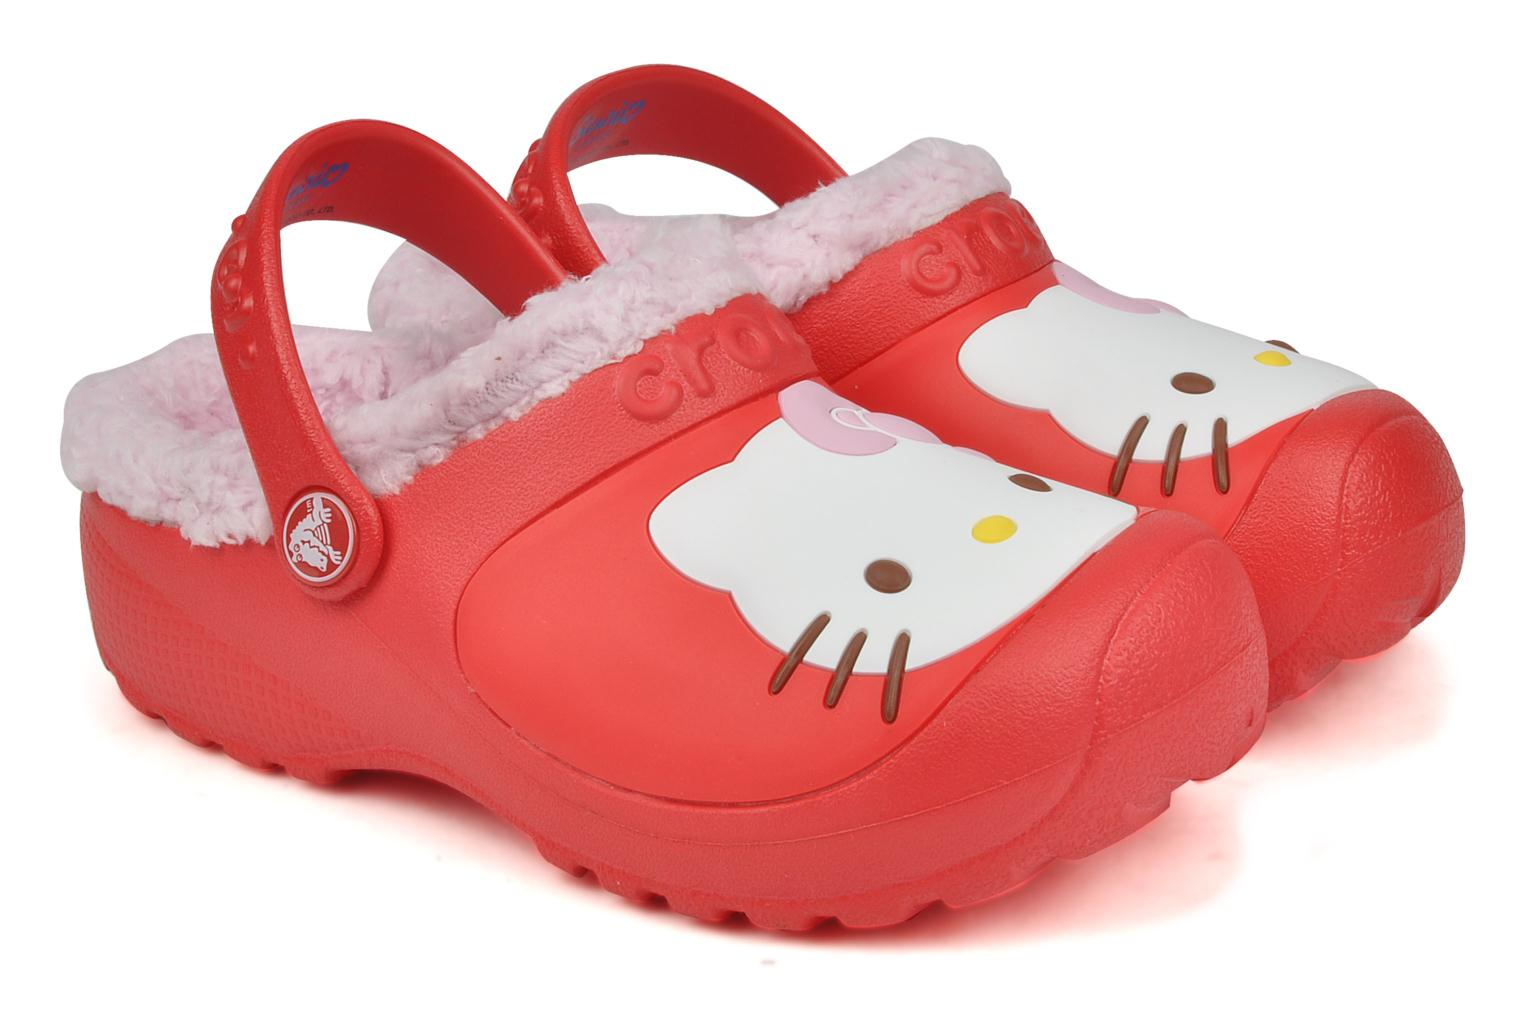 Sandals Crocs Hello kitty lined custom clog Red 3/4 view